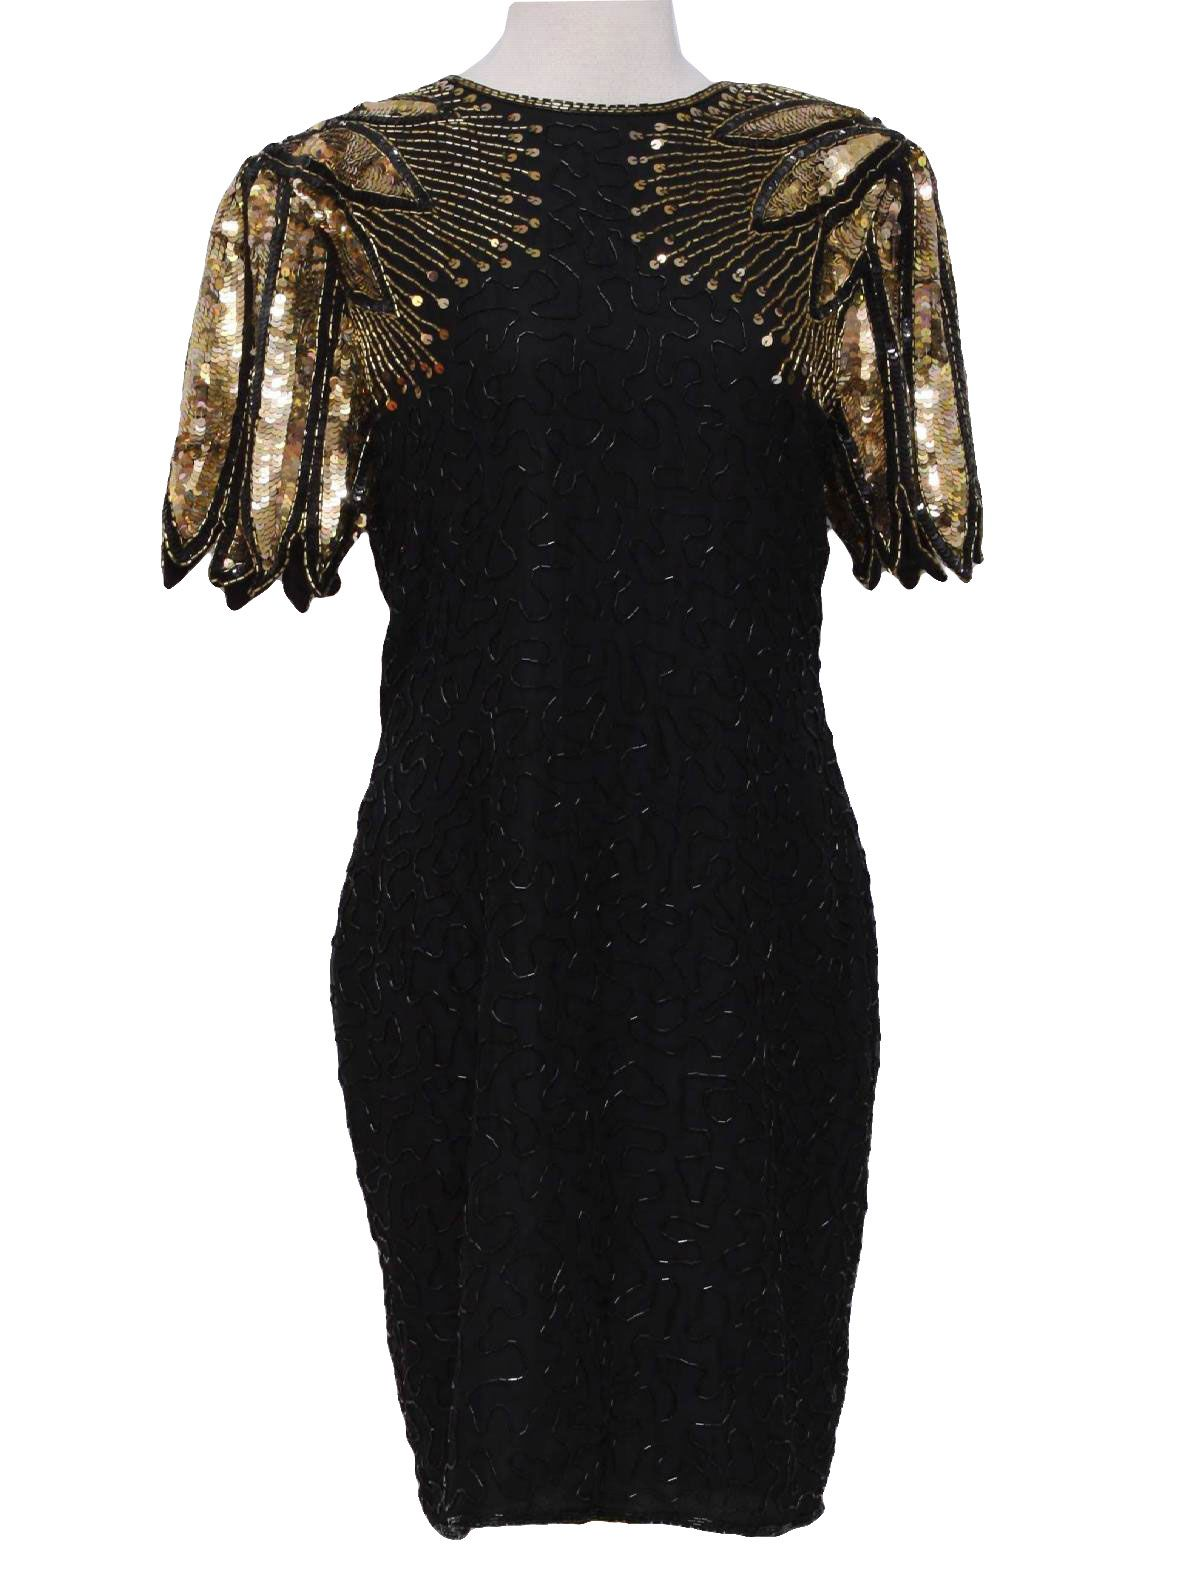 Stenay Eighties Vintage Cocktail Dress 80s Stenay Womens Black Background Silk Polyester Lined Mid Leng Vintage Sequins Dress Sequin Cocktail Dress Dresses [ 1593 x 1200 Pixel ]